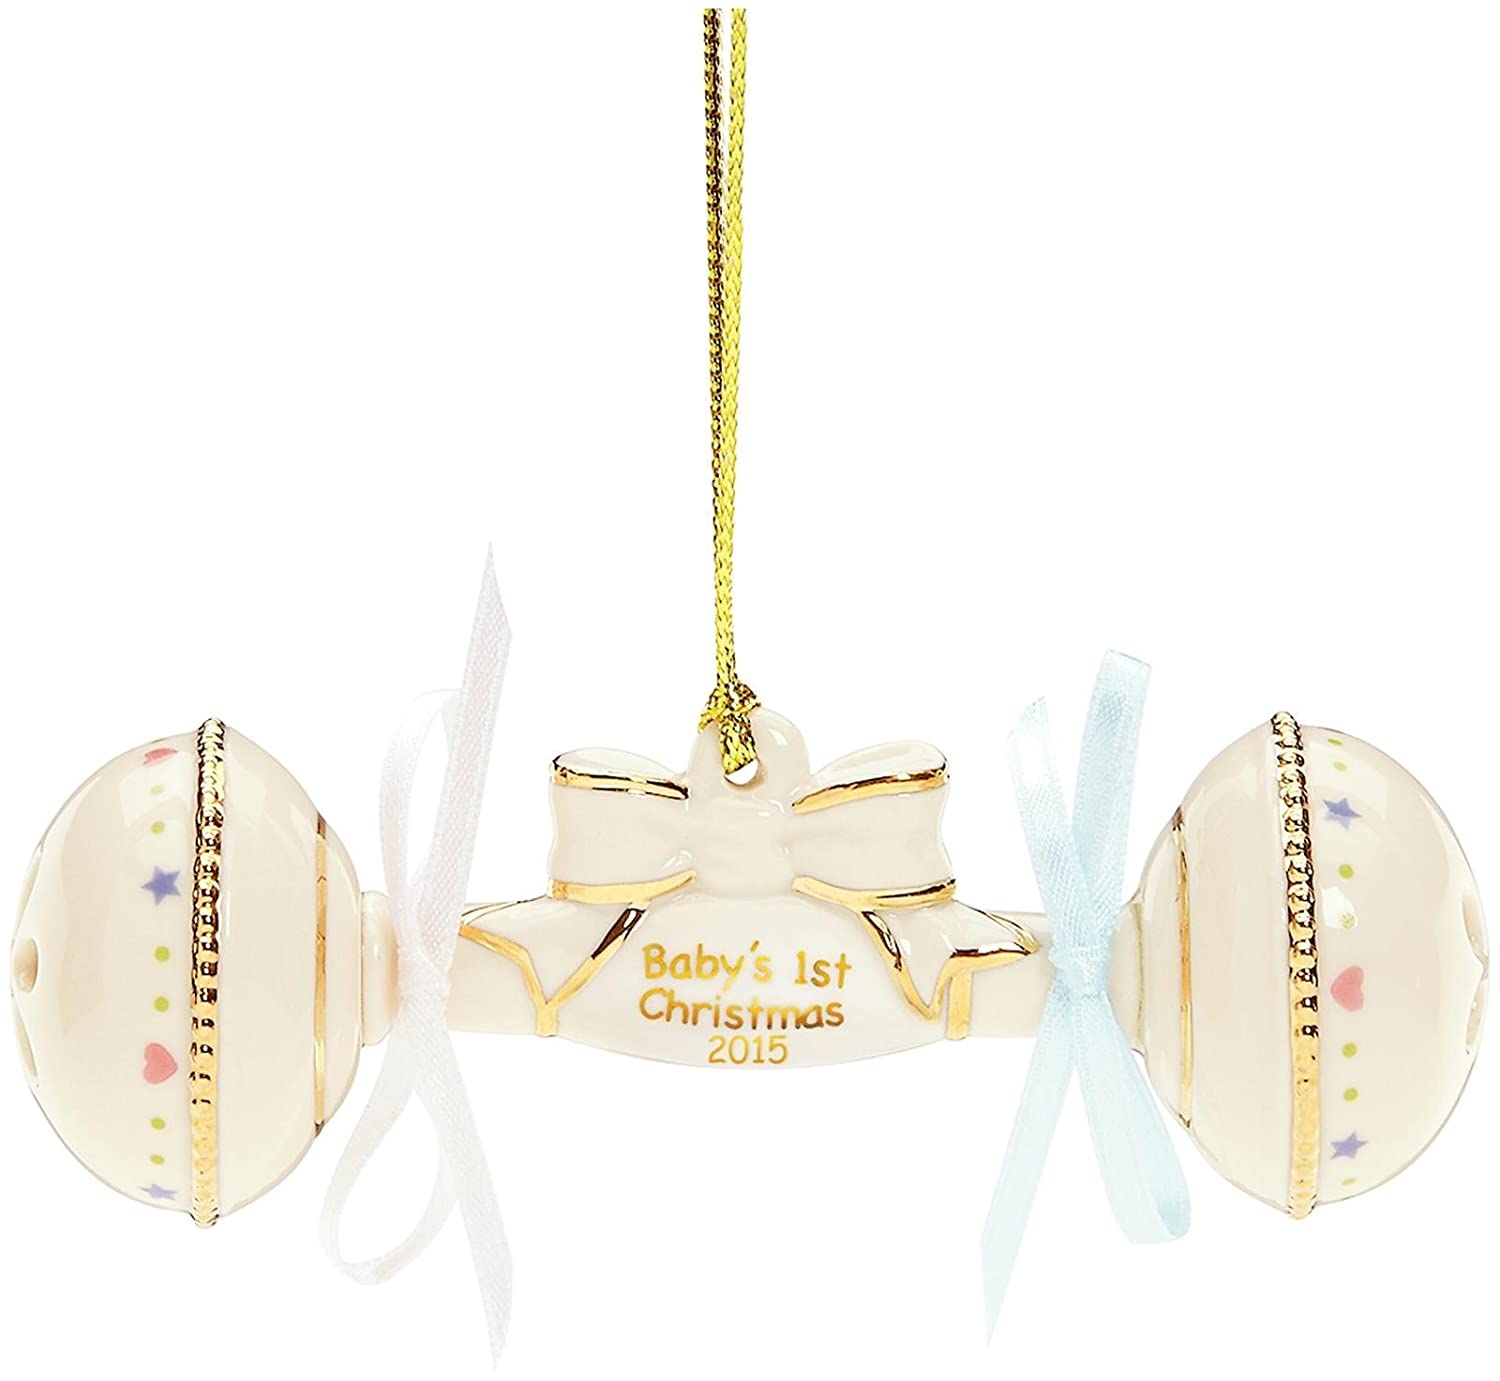 Lenox 2015 Baby's First Christmas Rattle Ornament